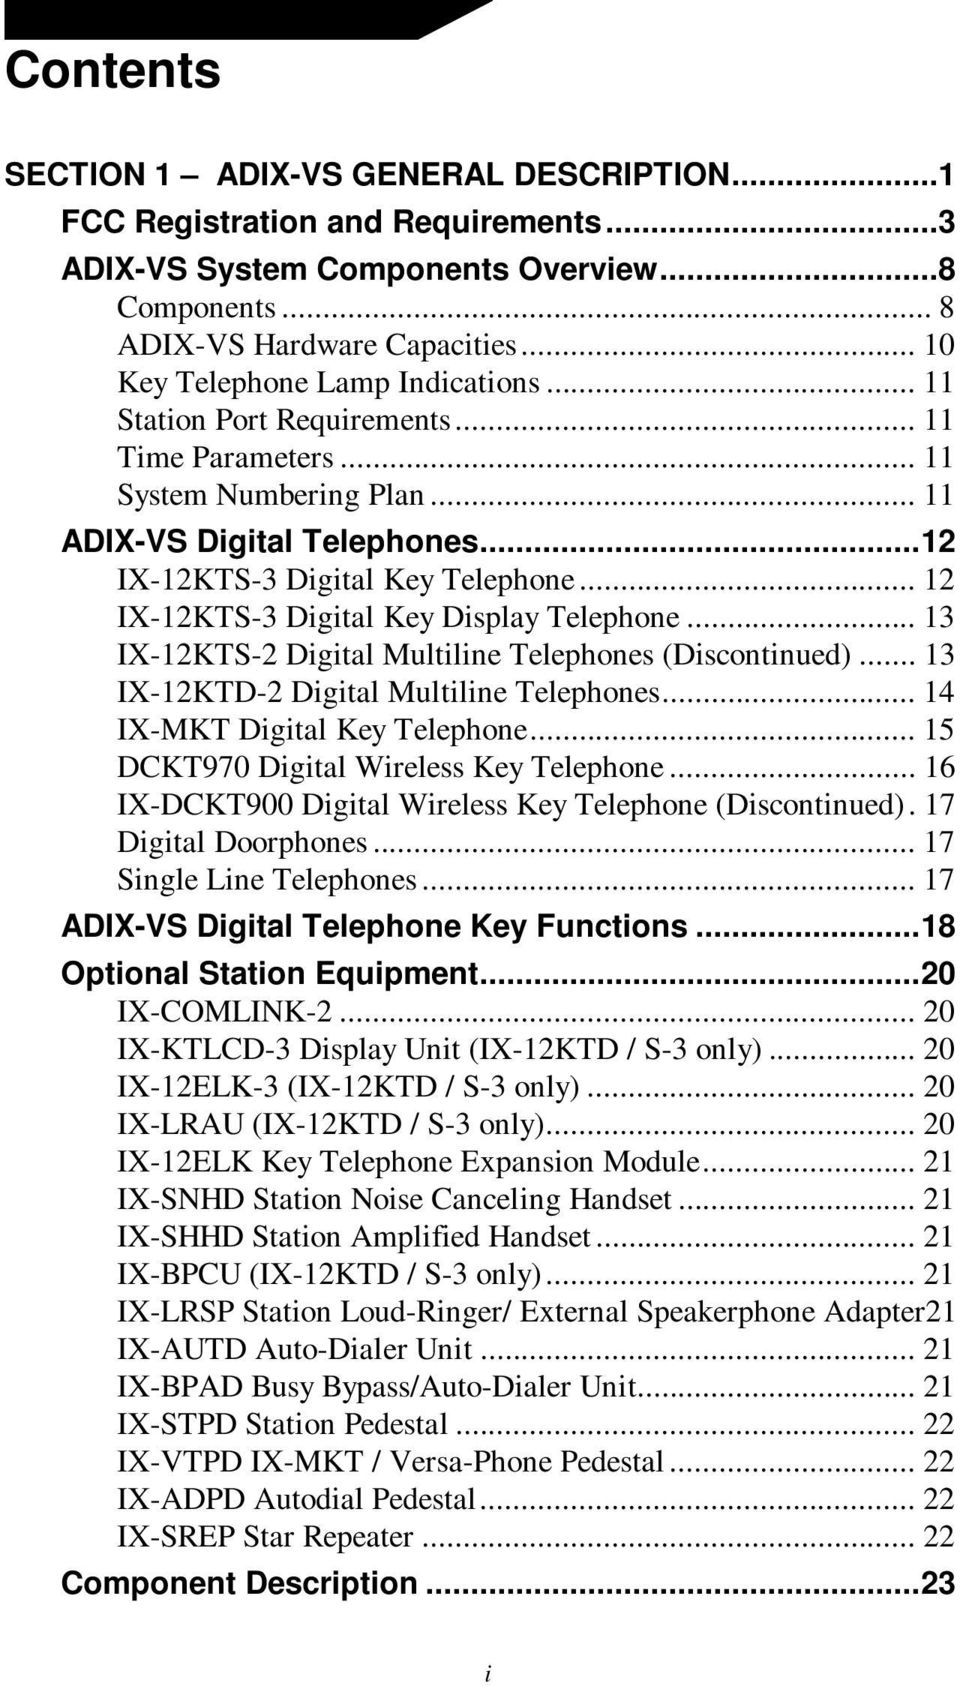 .. 12 IX-12KTS-3 Digital Key Display Telephone... 13 IX-12KTS-2 Digital Multiline Telephones (Discontinued)... 13 IX-12KTD-2 Digital Multiline Telephones... 14 IX-MKT Digital Key Telephone.